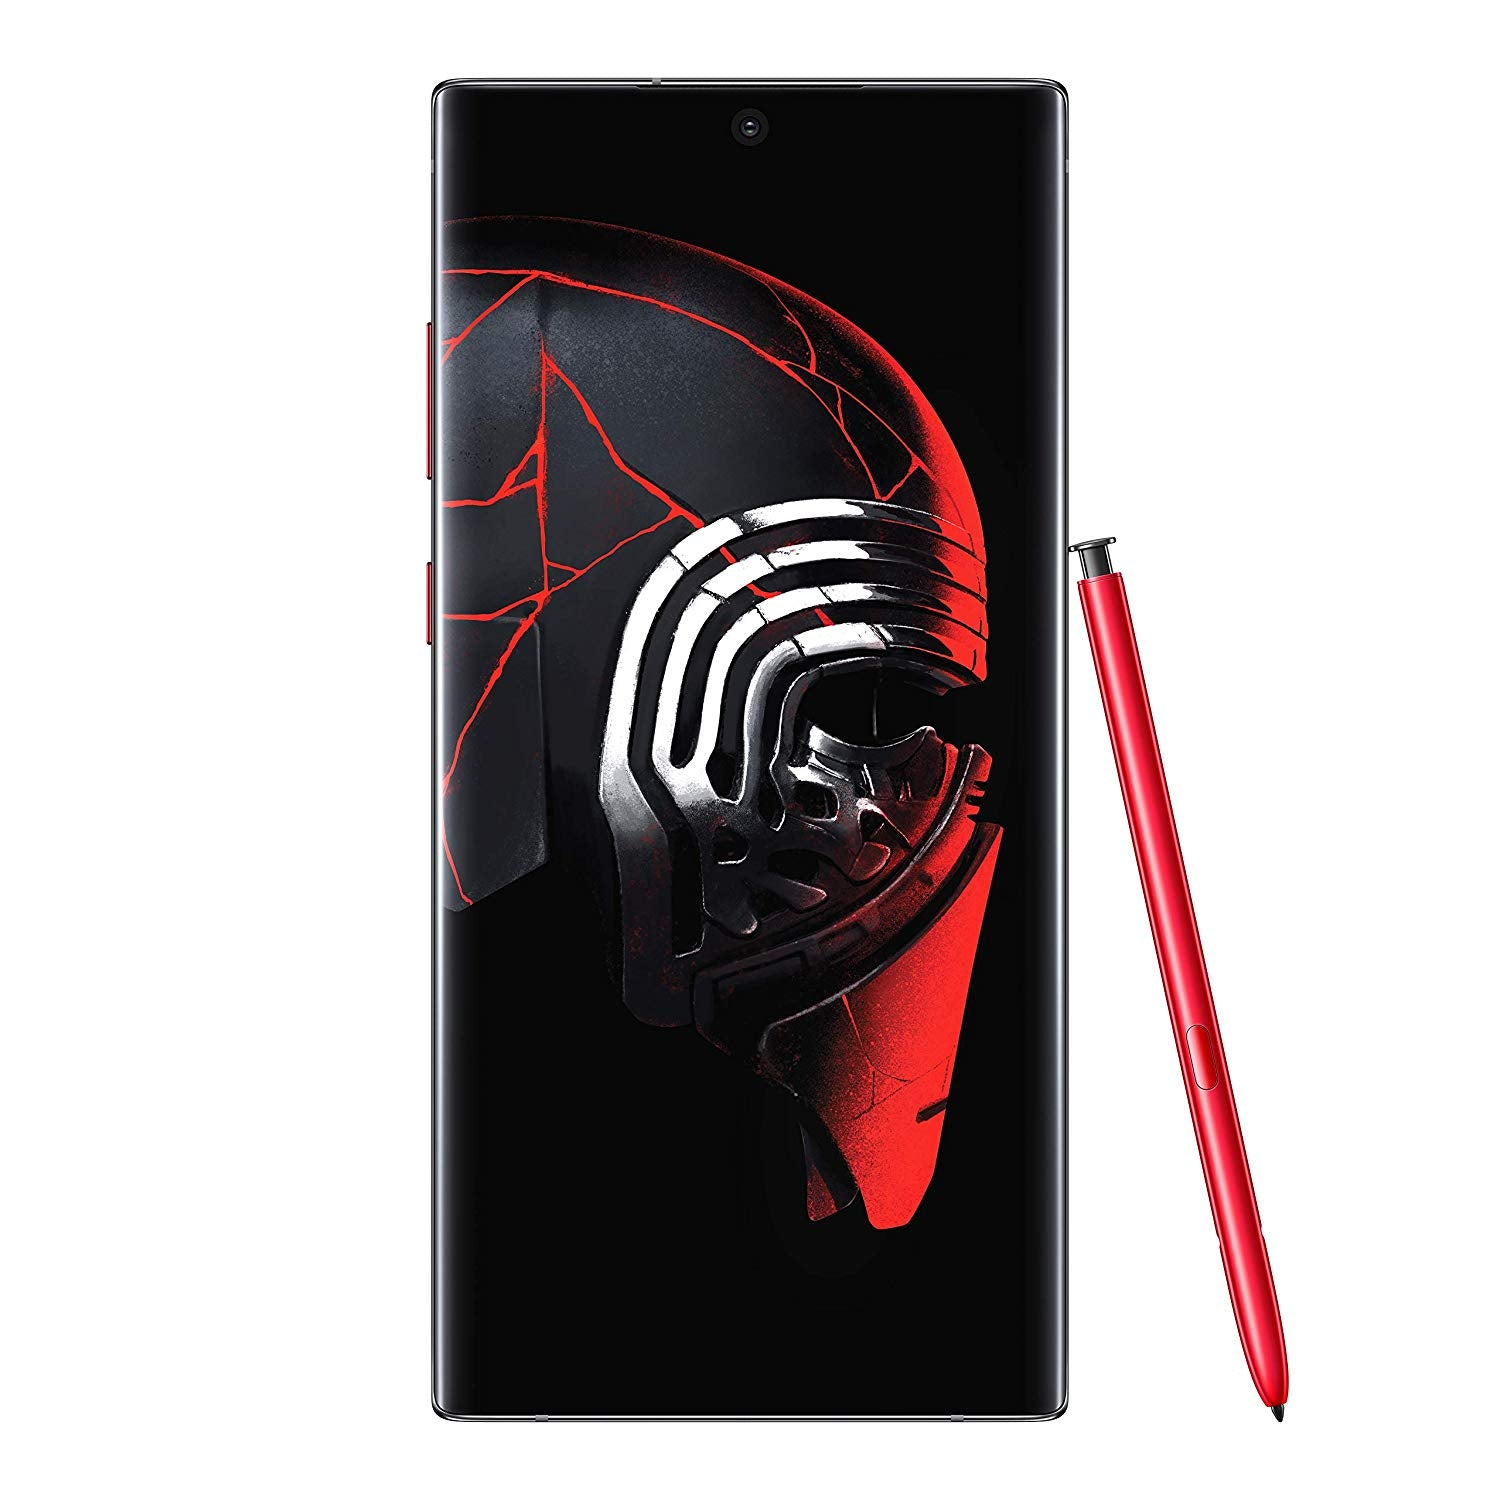 Samsung Galaxy Note 10+ Plus Star Wars Special Edition